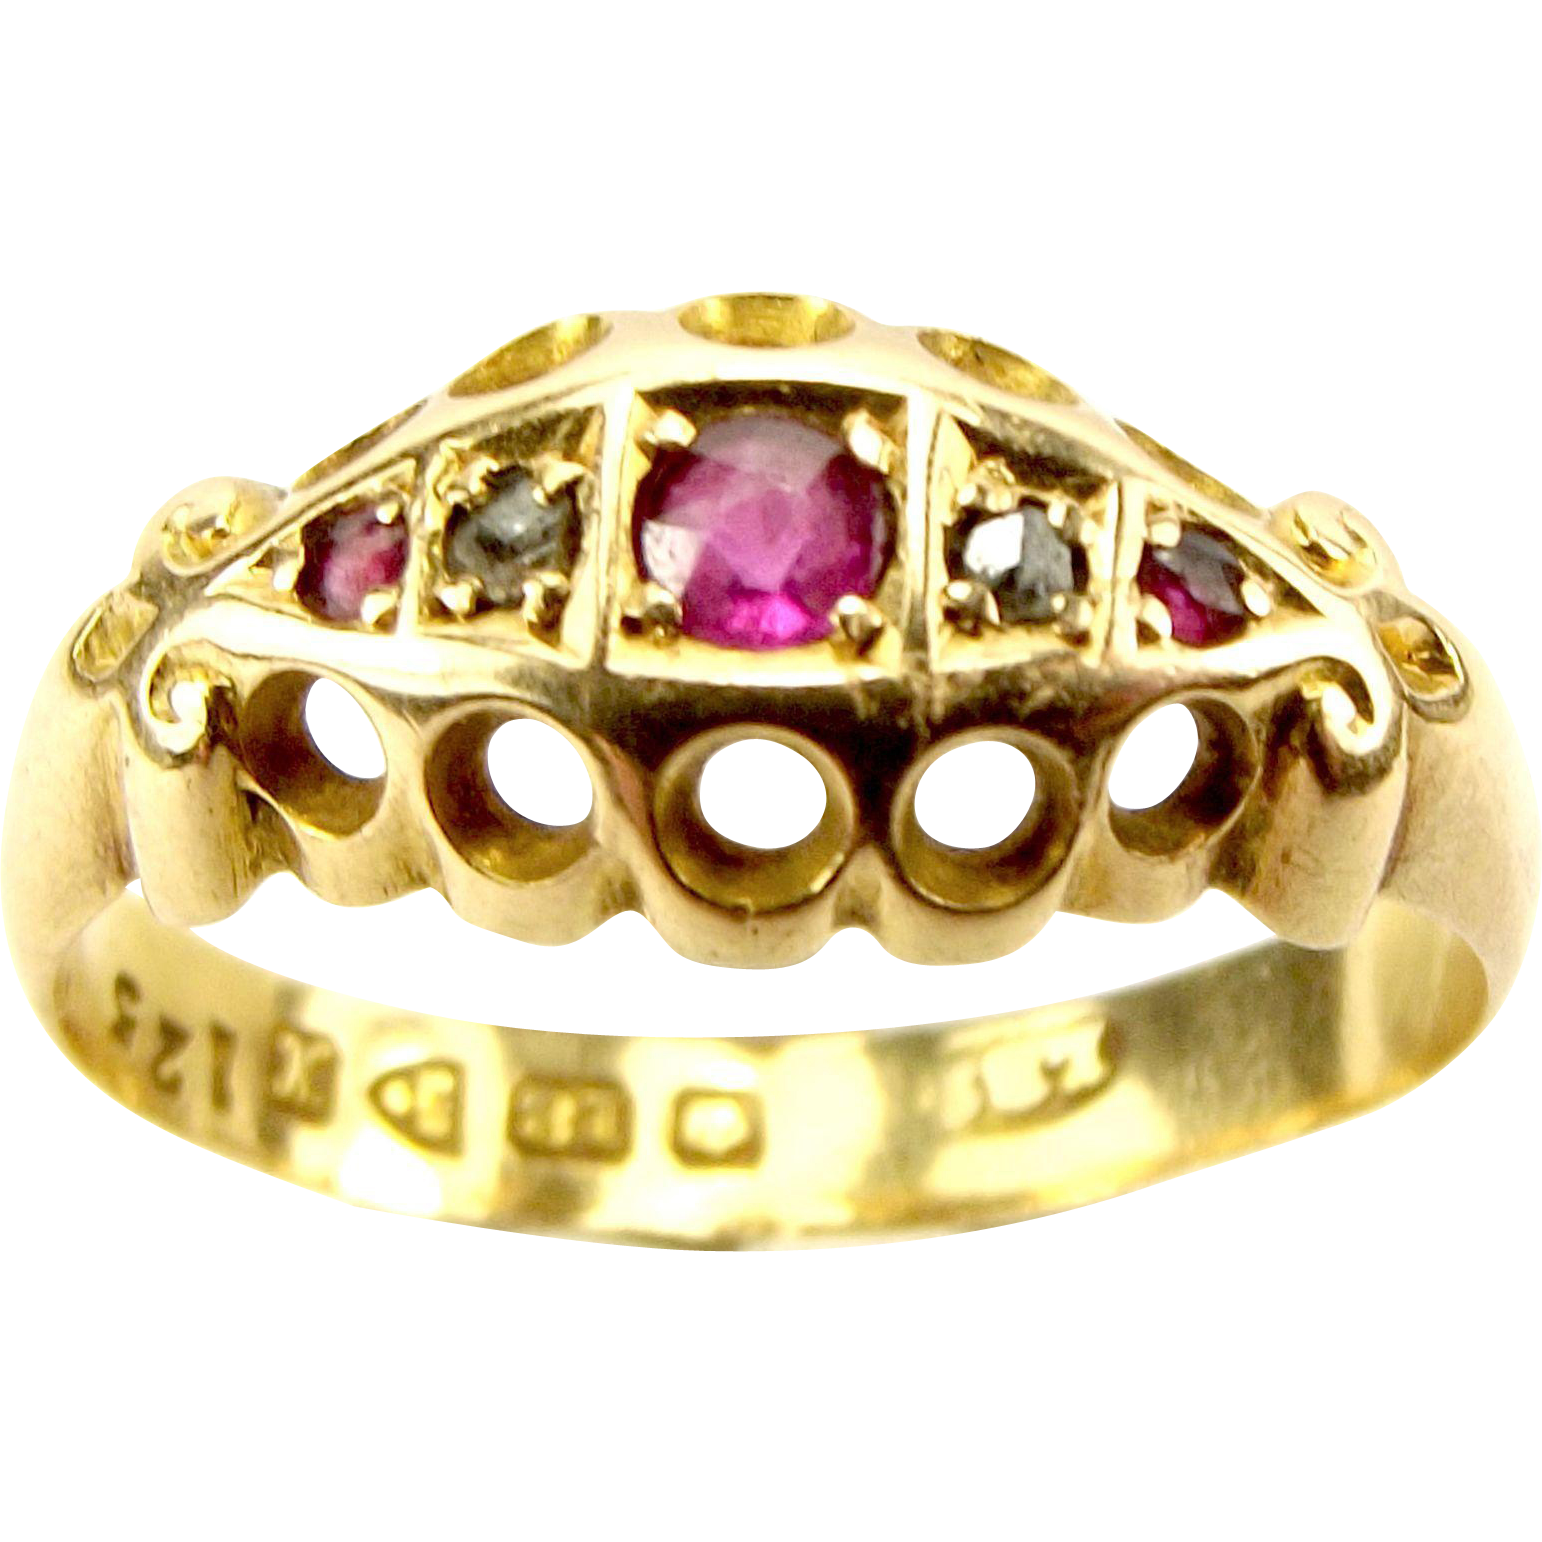 Antique EDWARDIAN 18ct Gold Ruby & Diamond Ring CHESTER 1910